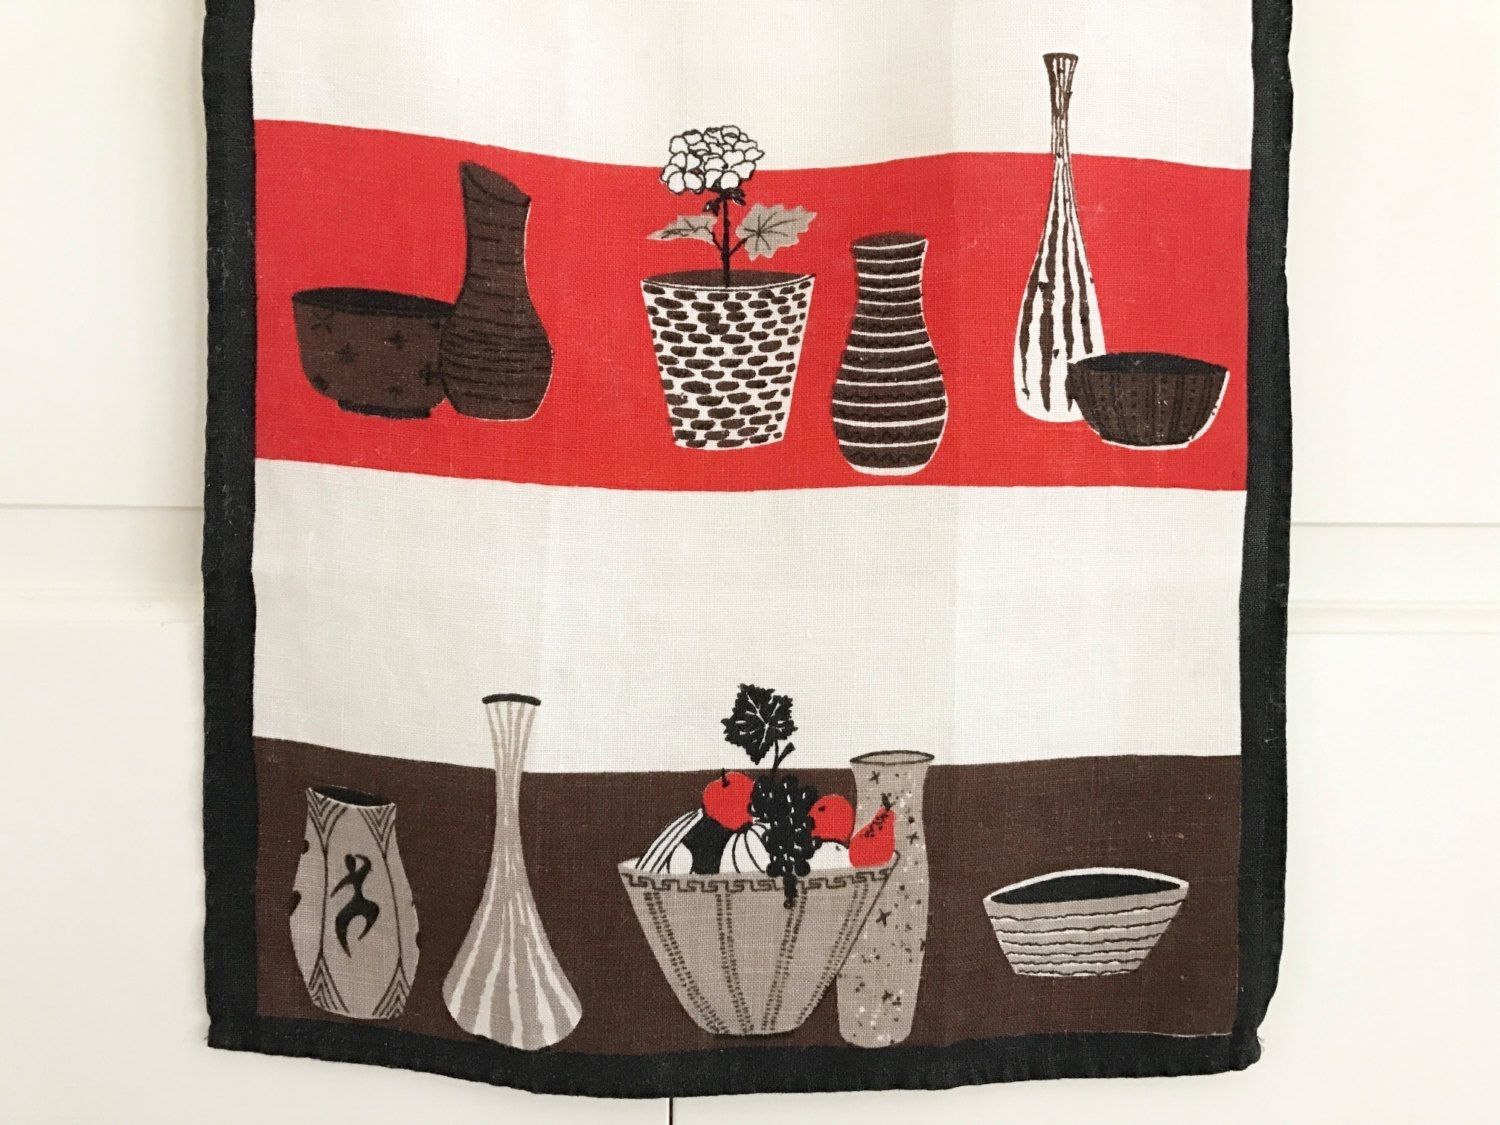 Mid Century Modern, Tea Towel, Cool Ceramic Vases, Bowls, Linen Throughout Most Current Mid Century Textile Wall Art (Gallery 14 of 15)